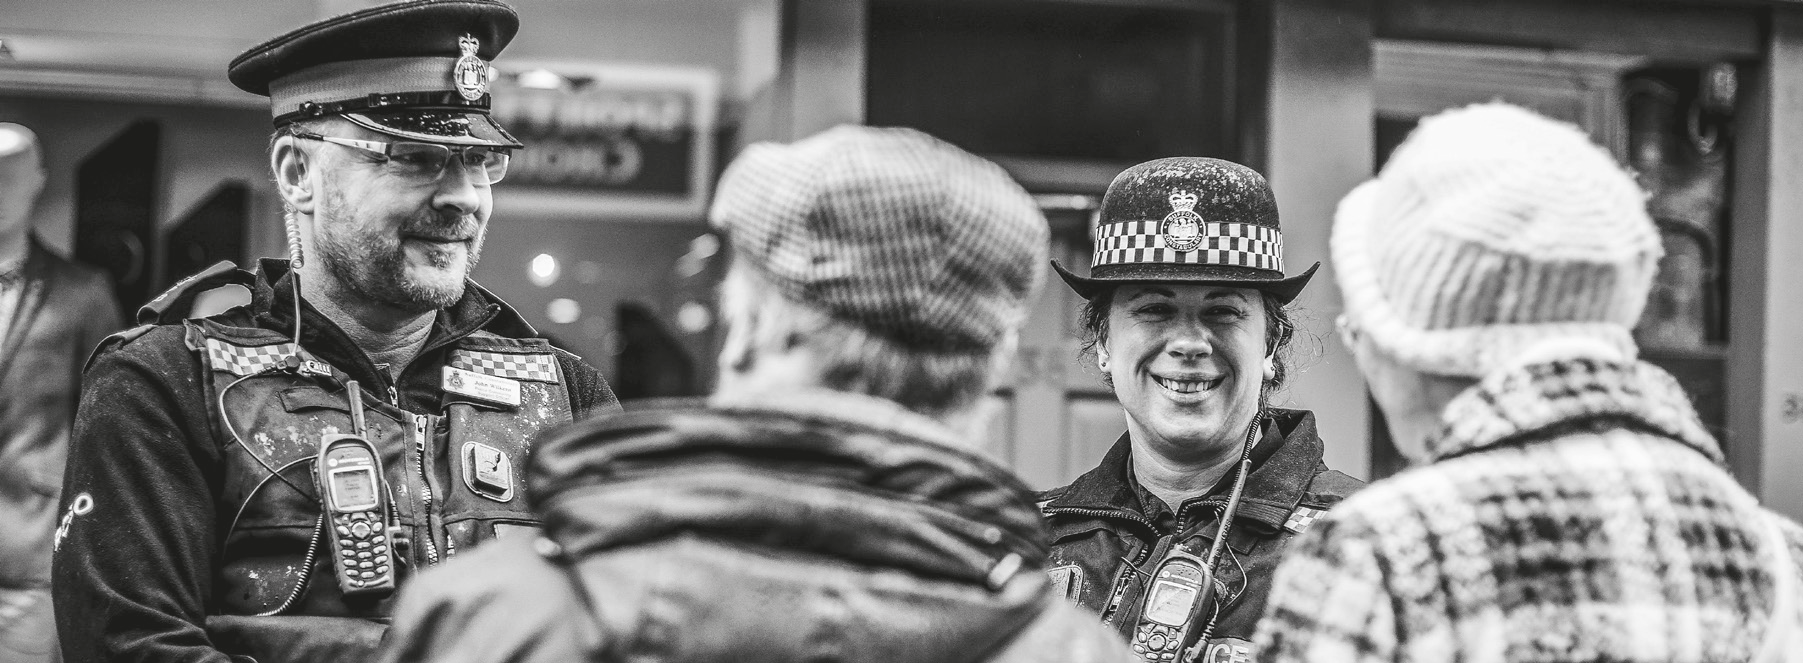 Sussex police officers smiling at an older couple